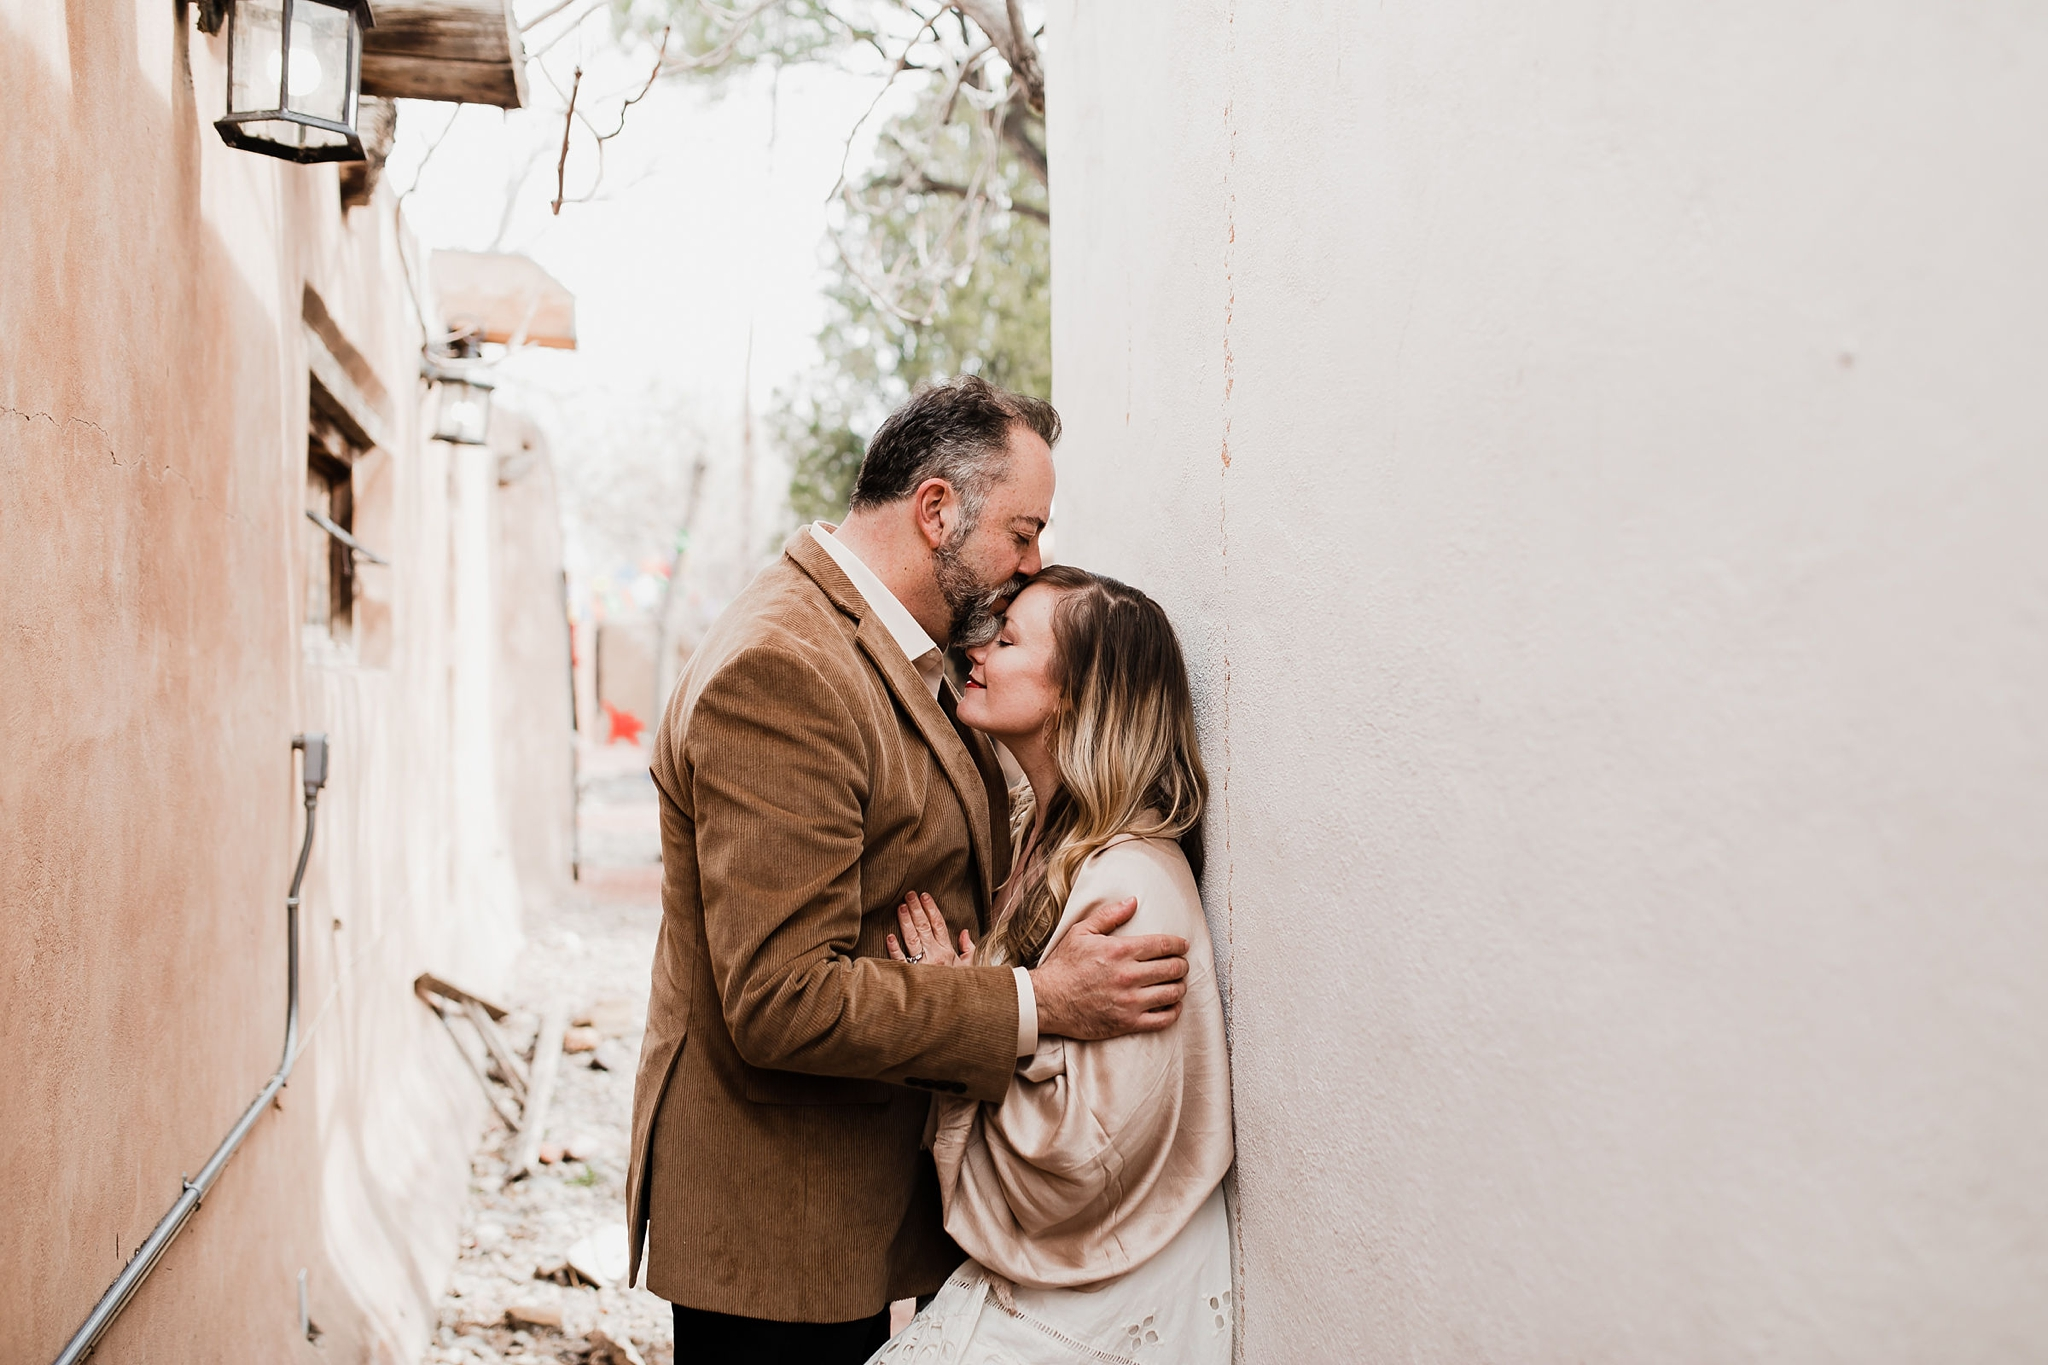 Alicia+lucia+photography+-+albuquerque+wedding+photographer+-+santa+fe+wedding+photography+-+new+mexico+wedding+photographer+-+new+mexico+engagement+-+albuquerque+engagement+-+old+town+engagement_0016.jpg